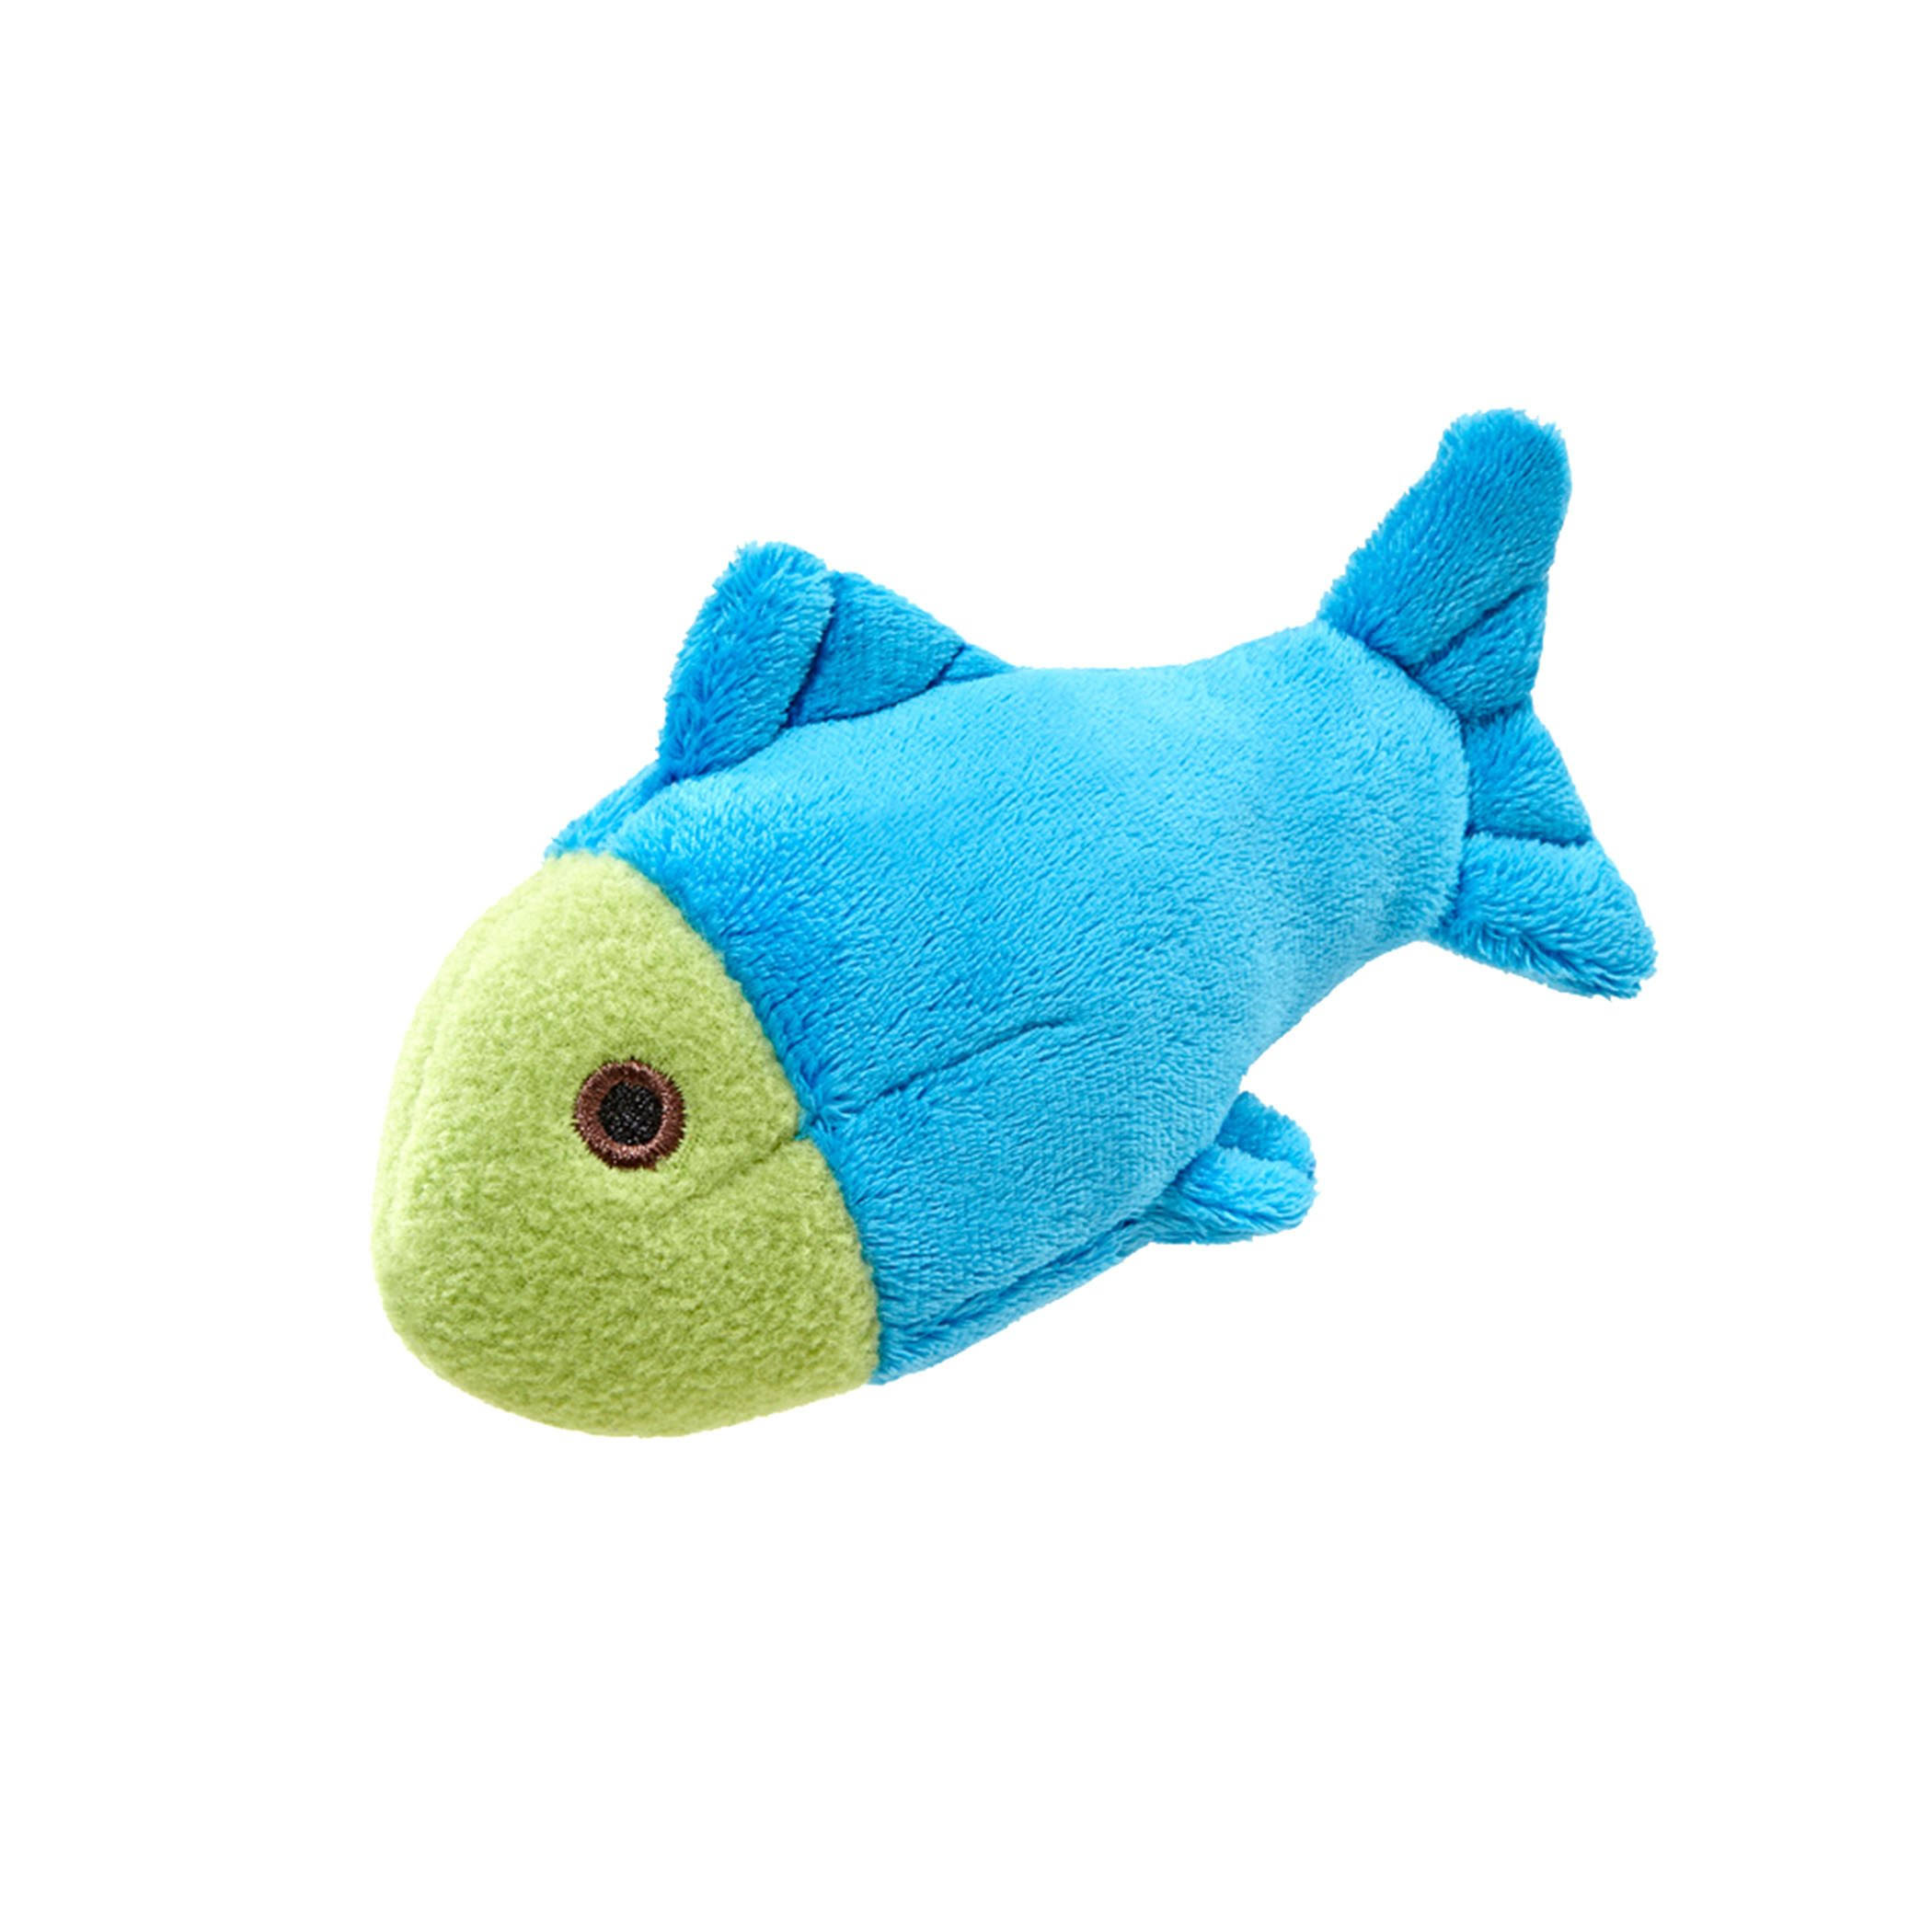 Fluff & Tuff Molly Fish Plush Dog Toy